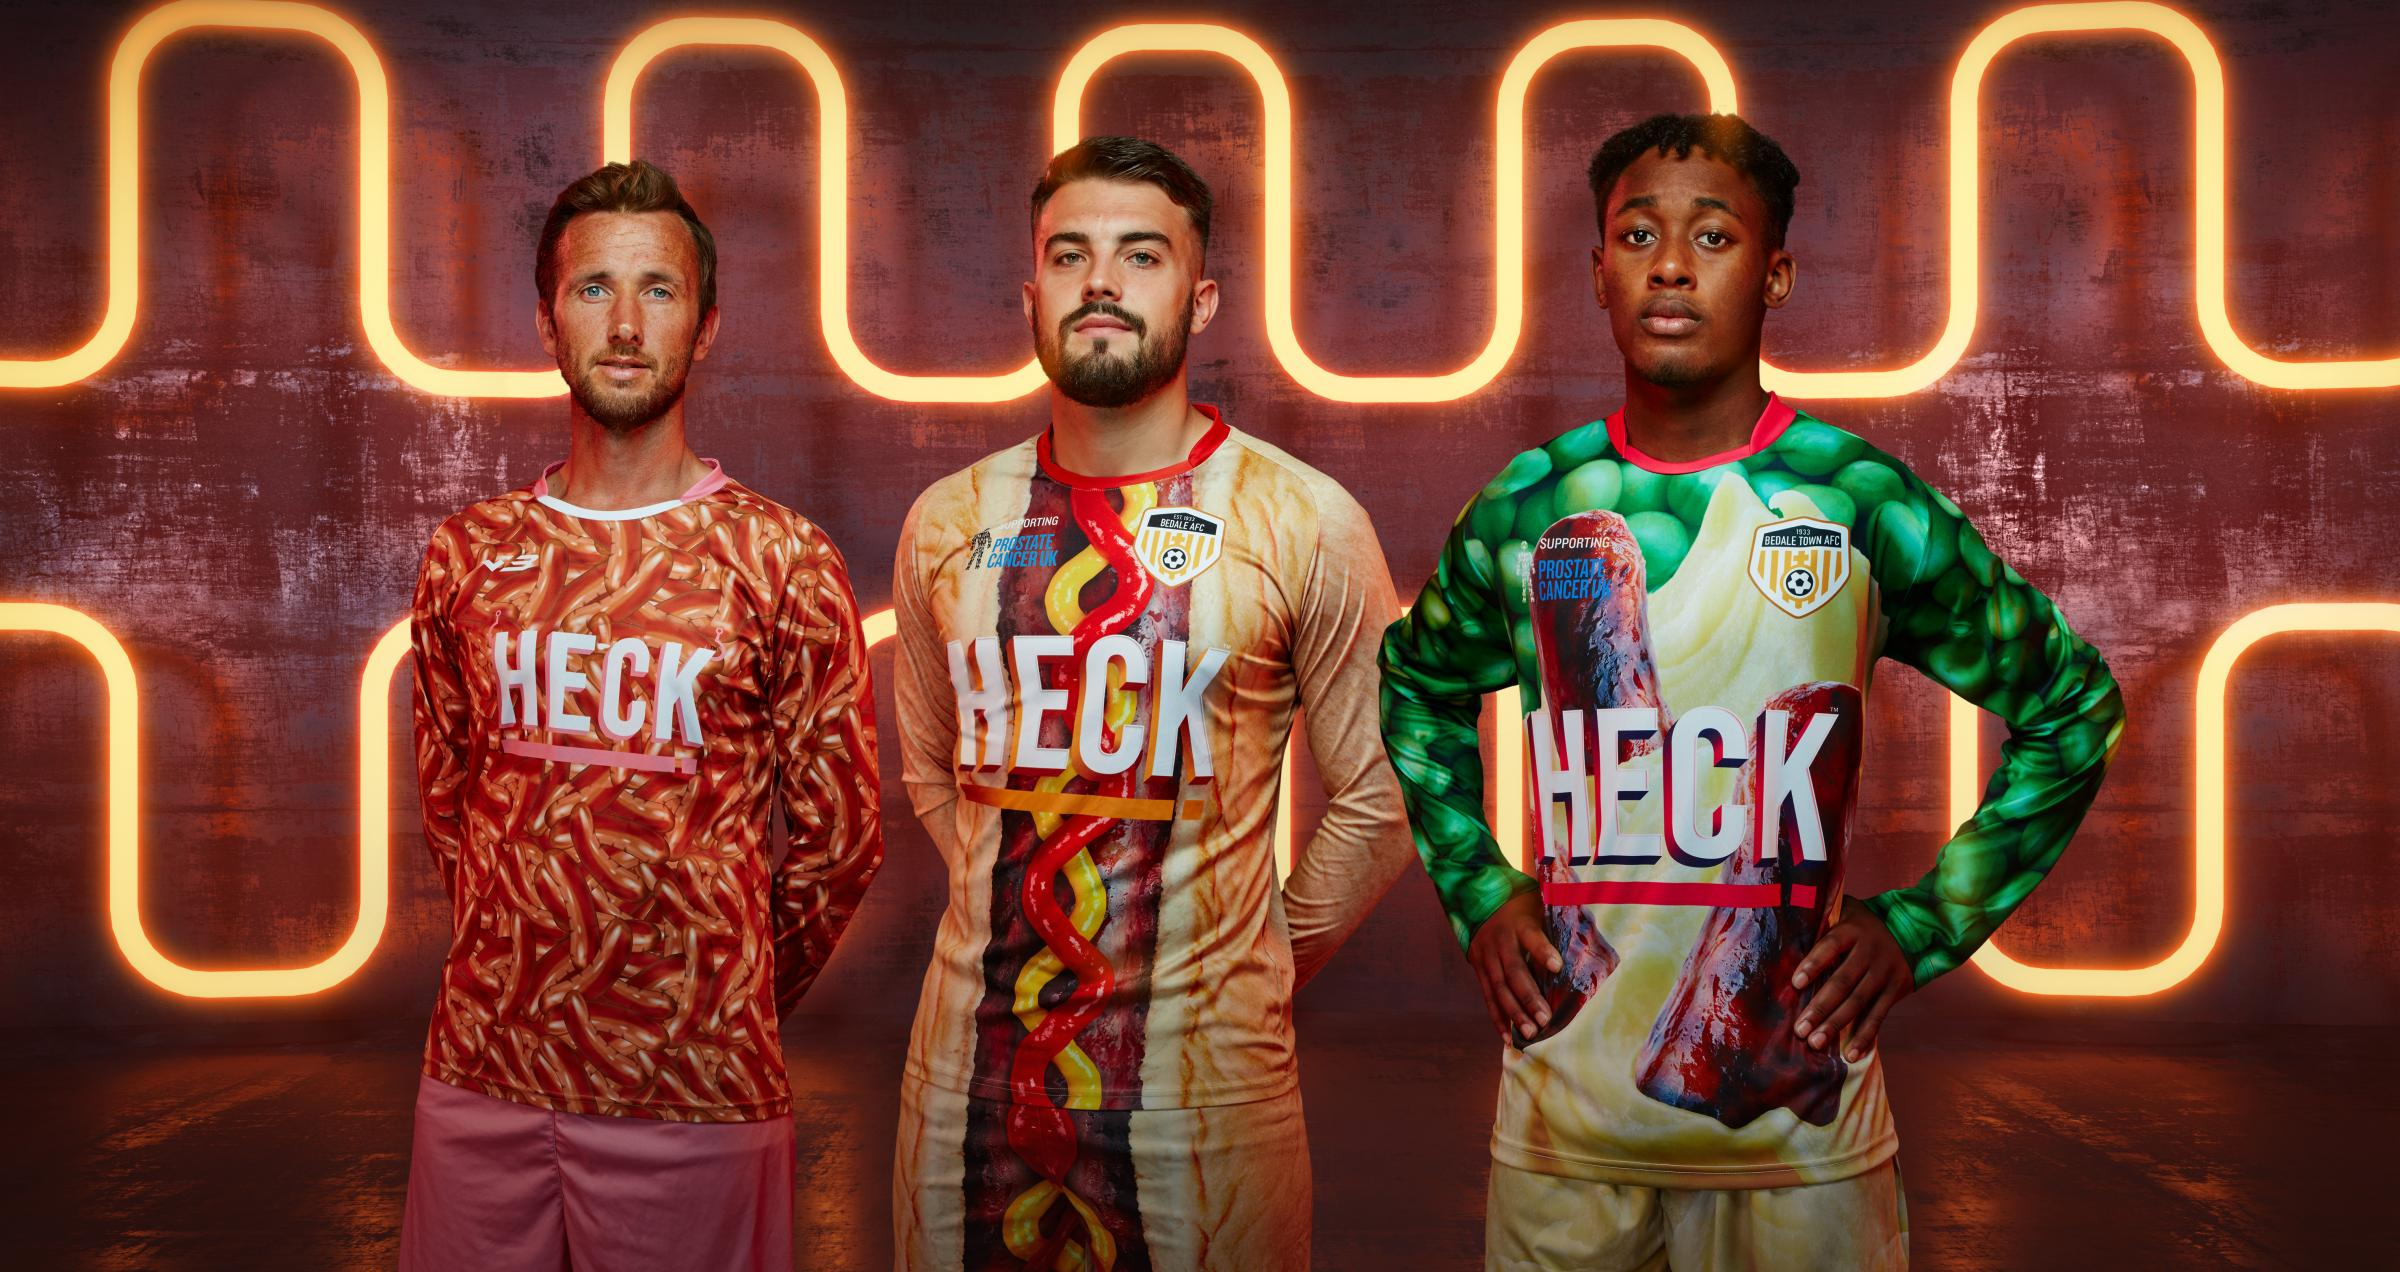 Bedale: FA enforces ban on Heck football kit